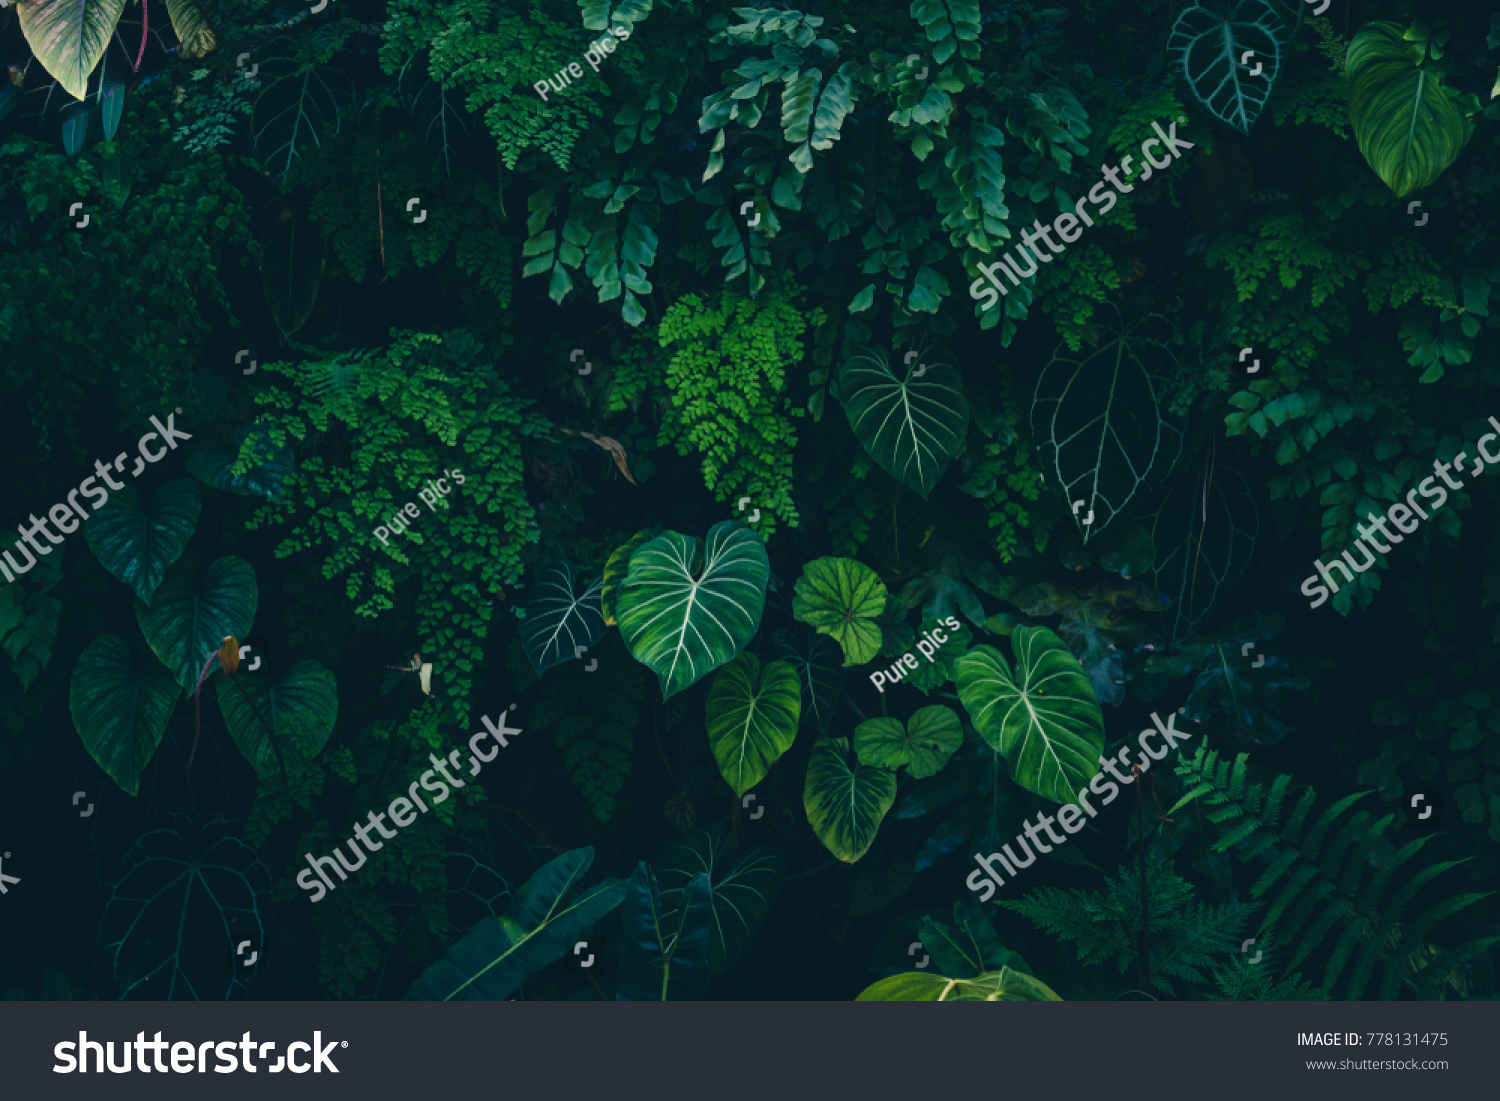 Tropical leaves texture,Abstract nature leaf green texture background.vintage dark tone,picture can used wallpaper desktop. #778131475